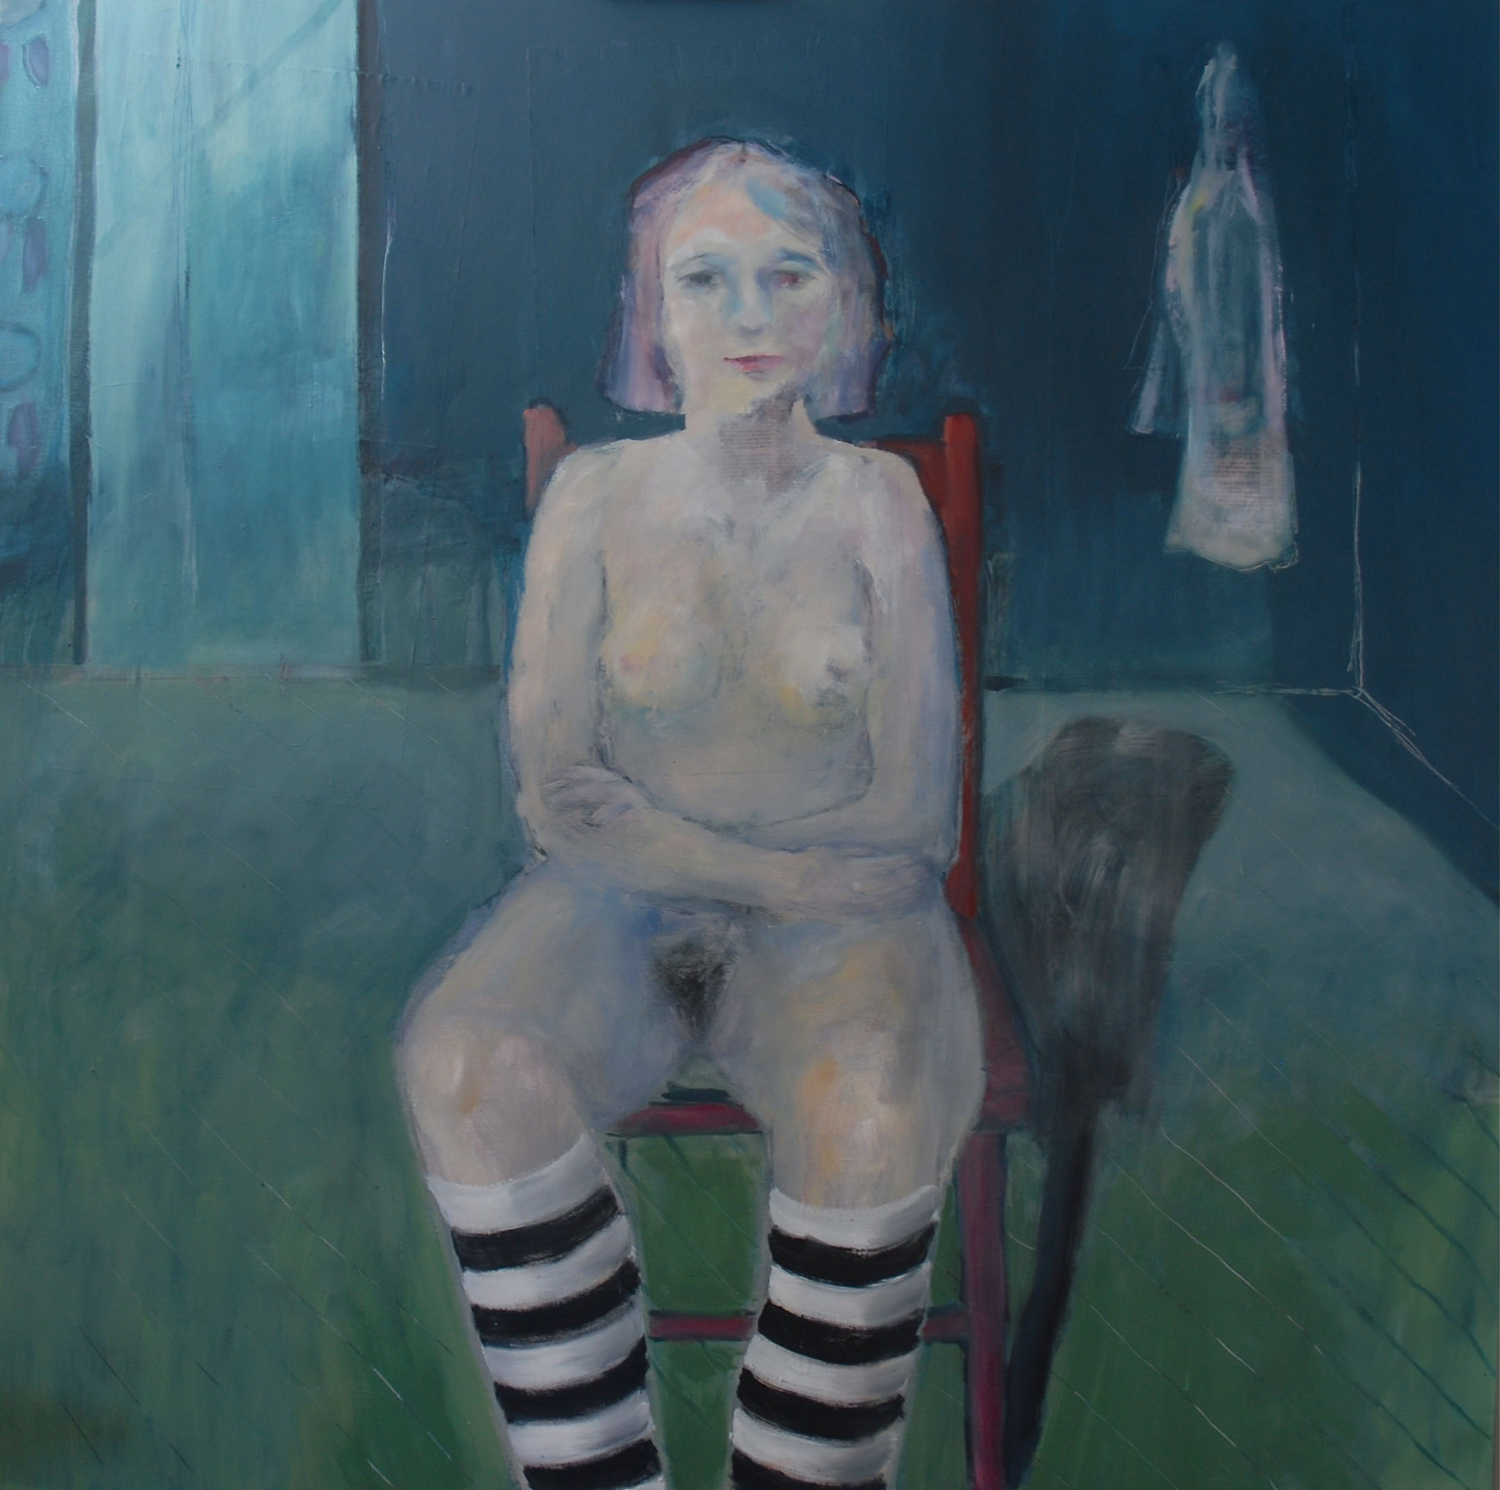 WOMAN WITH STRIPED STOCKINGS